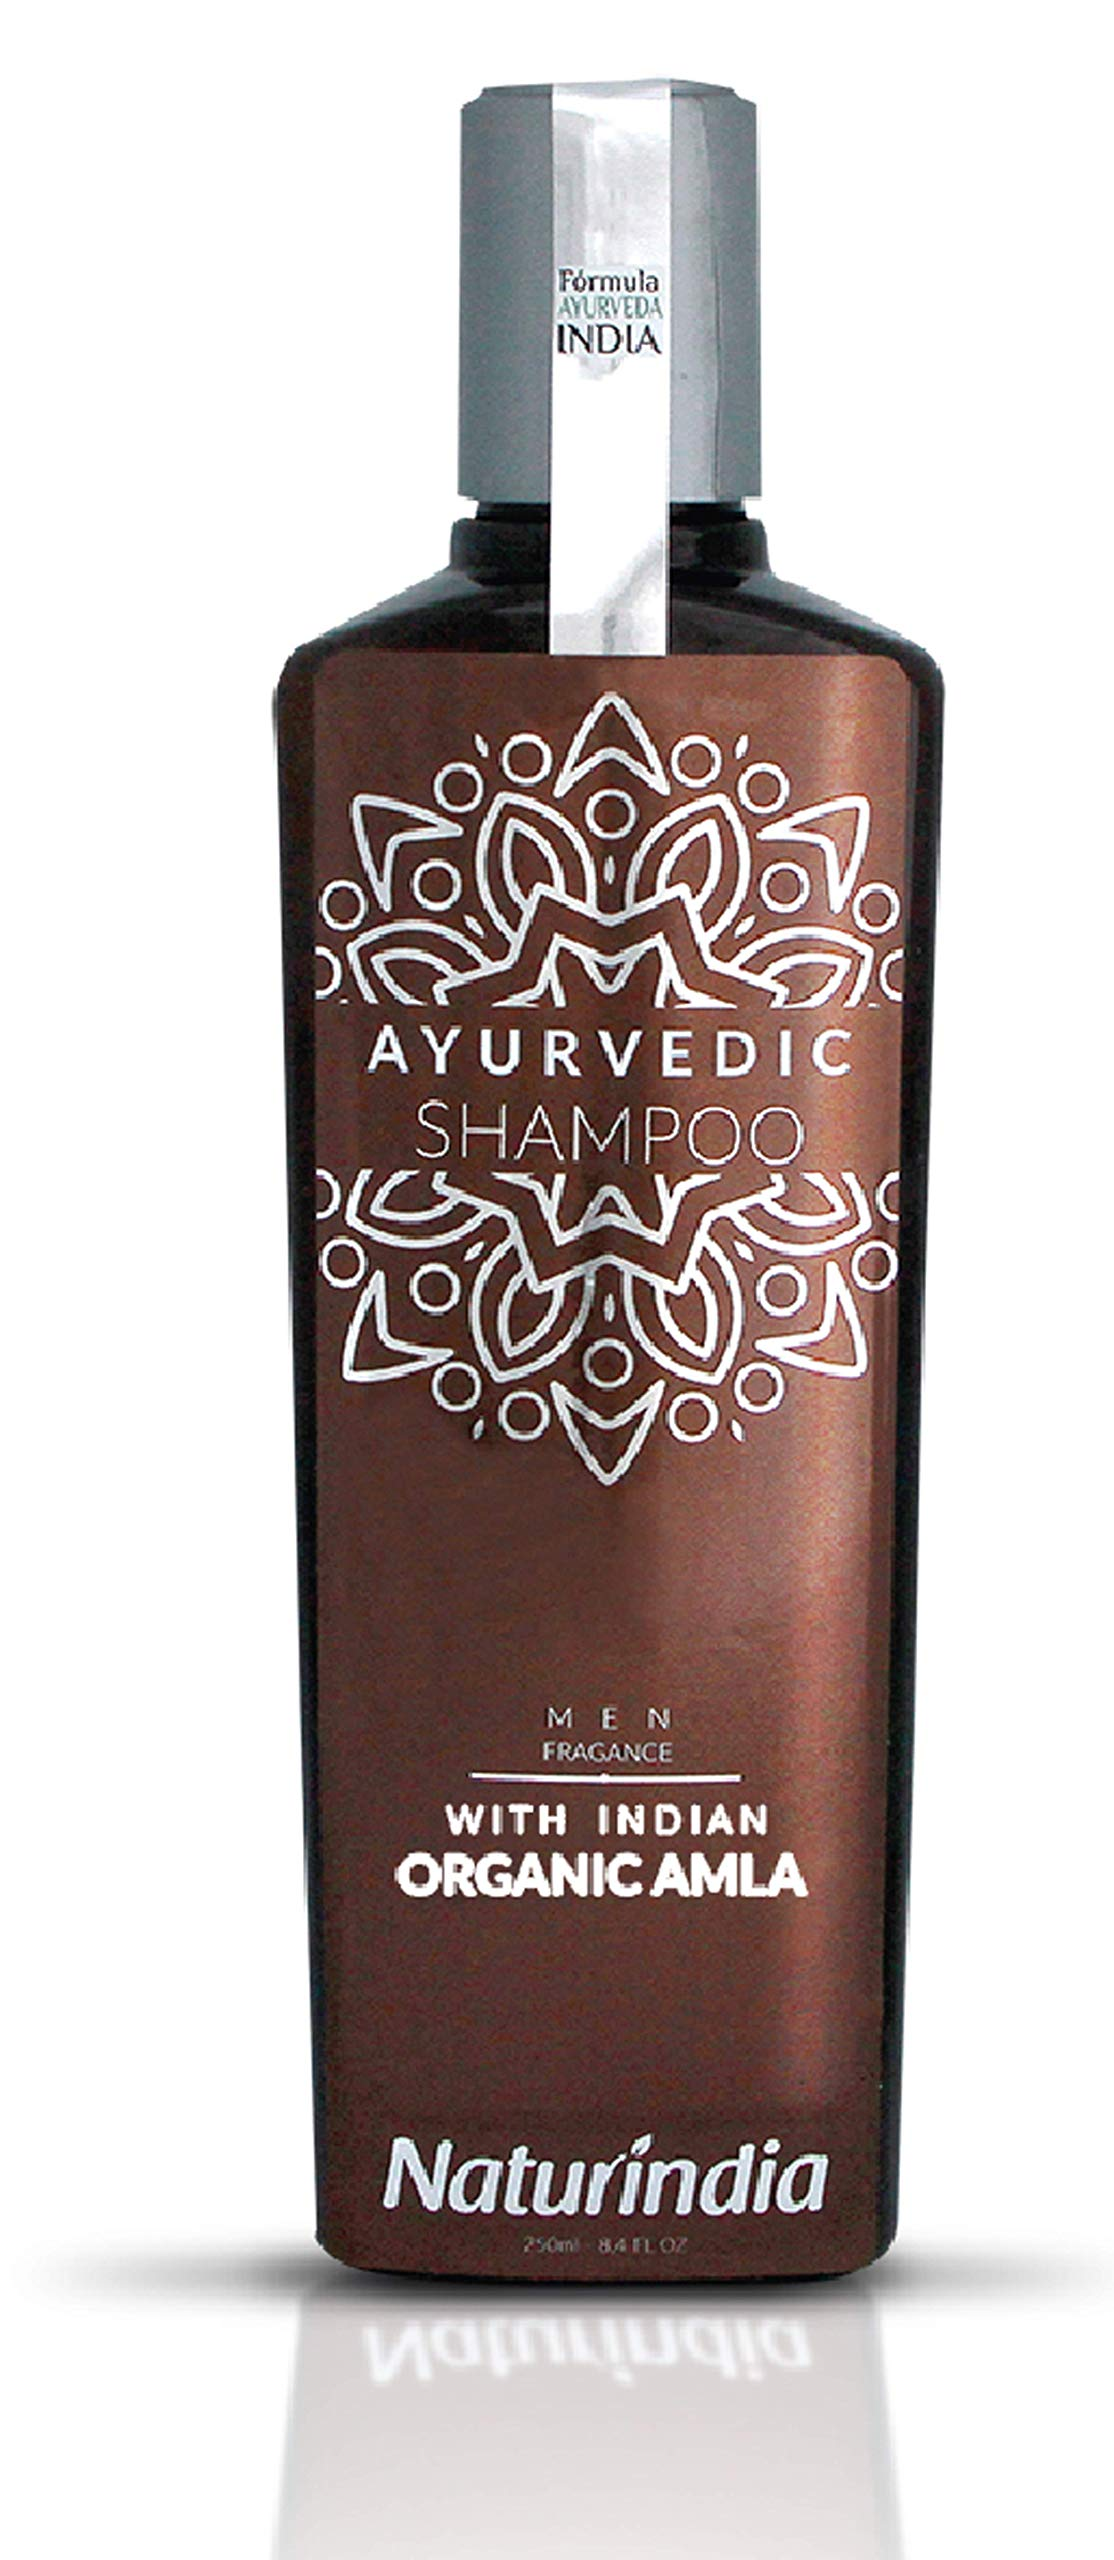 Naturindia Ayurvedic Shampoo for Men Hair Growth ORGANIC AMLA DHT Blocker Indian Vitalize Formula for Shiny and Strong Hair with Vitamin C and B-Complex and natural herbs from India 8,4 oz